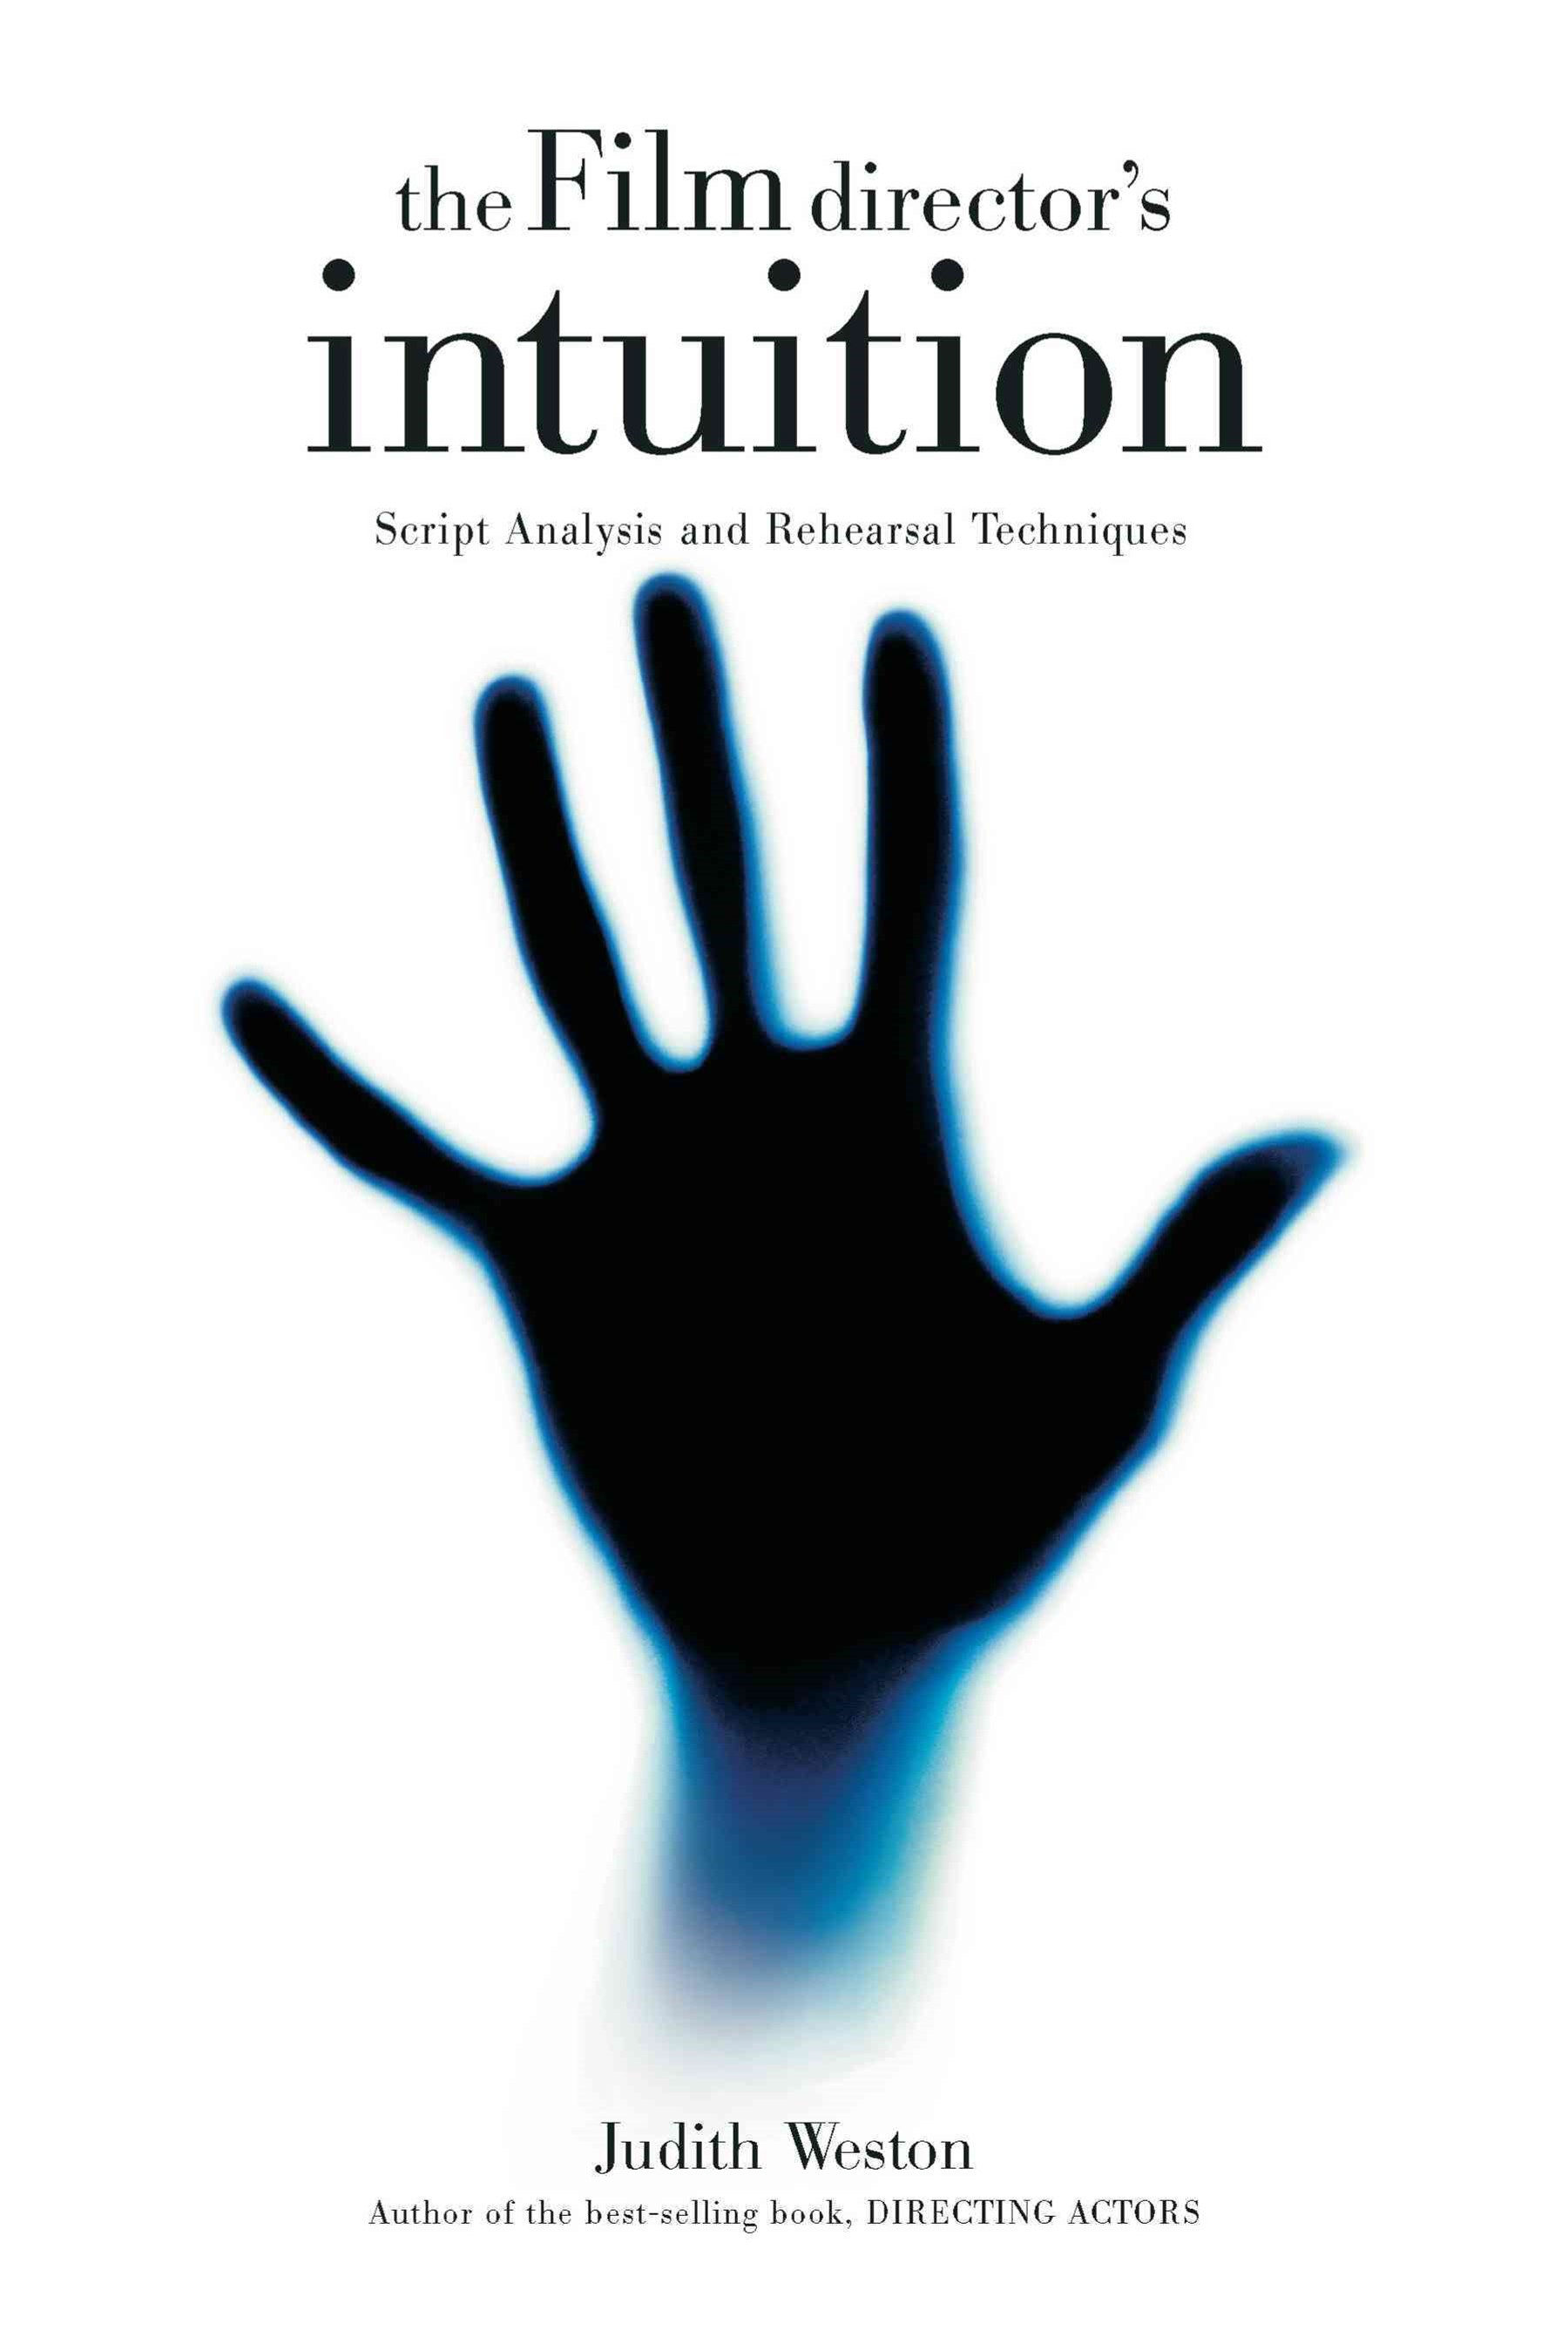 Film Director's Intuition